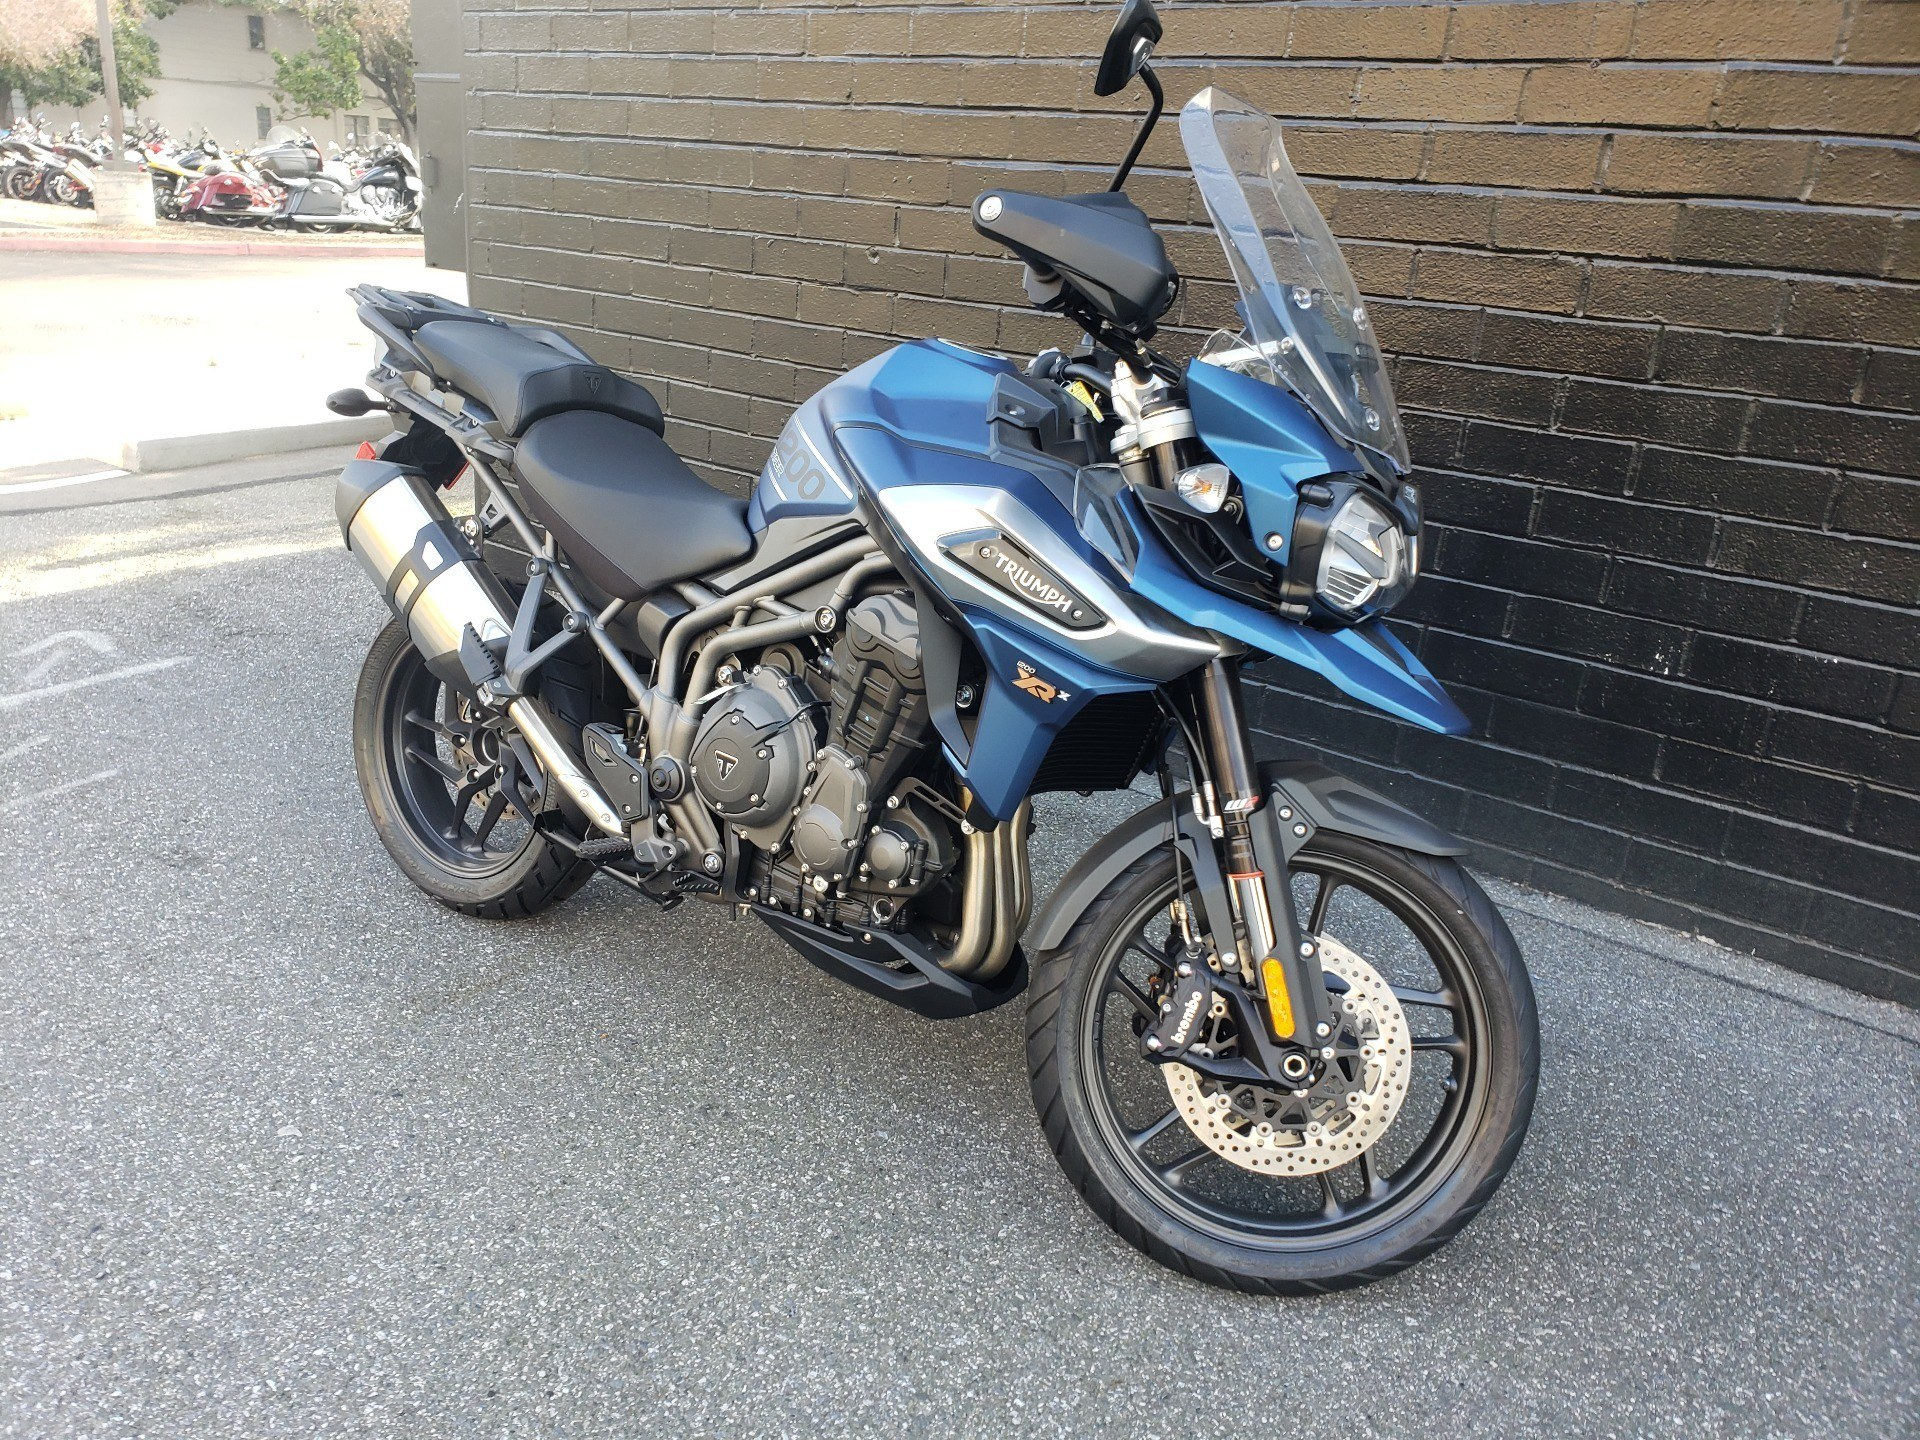 2019 Triumph Tiger 1200 XCa in San Jose, California - Photo 2